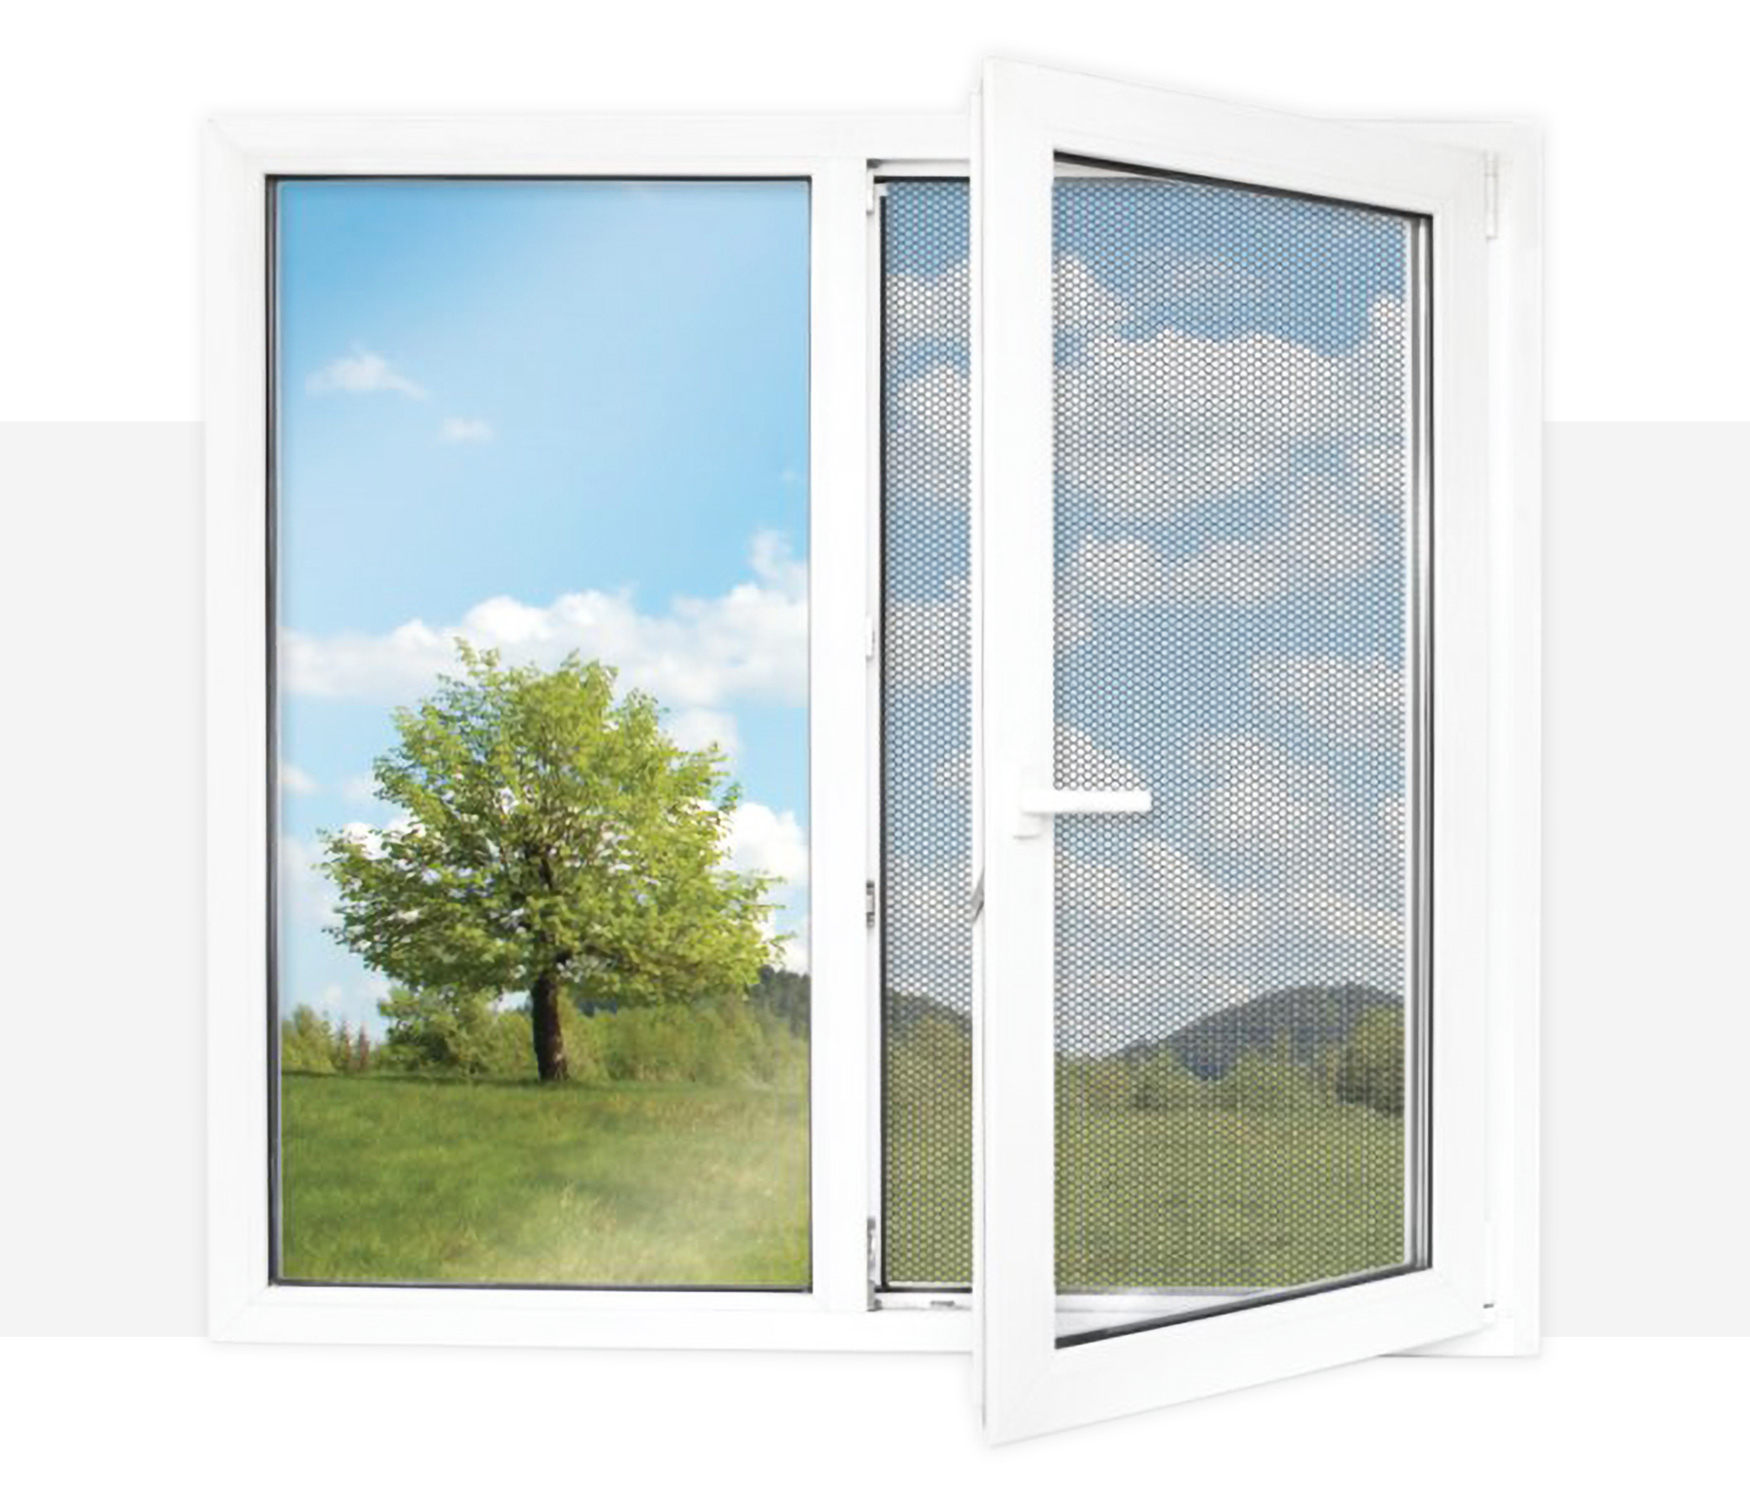 Respilon window membrane installed into a window with a meadow outside